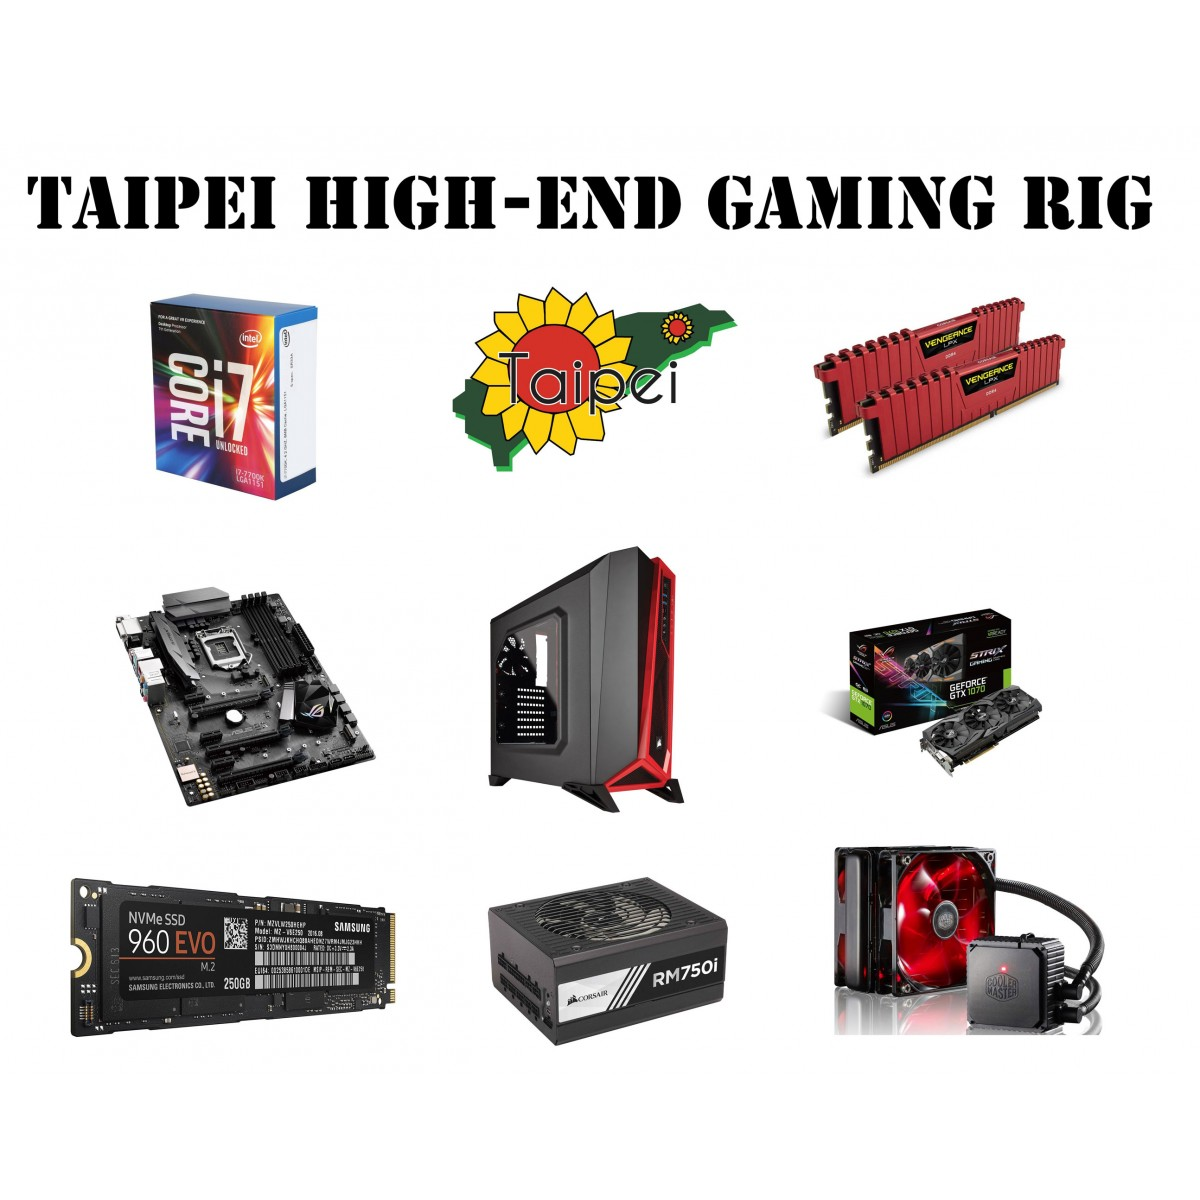 Taipei High-End Gaming Rig